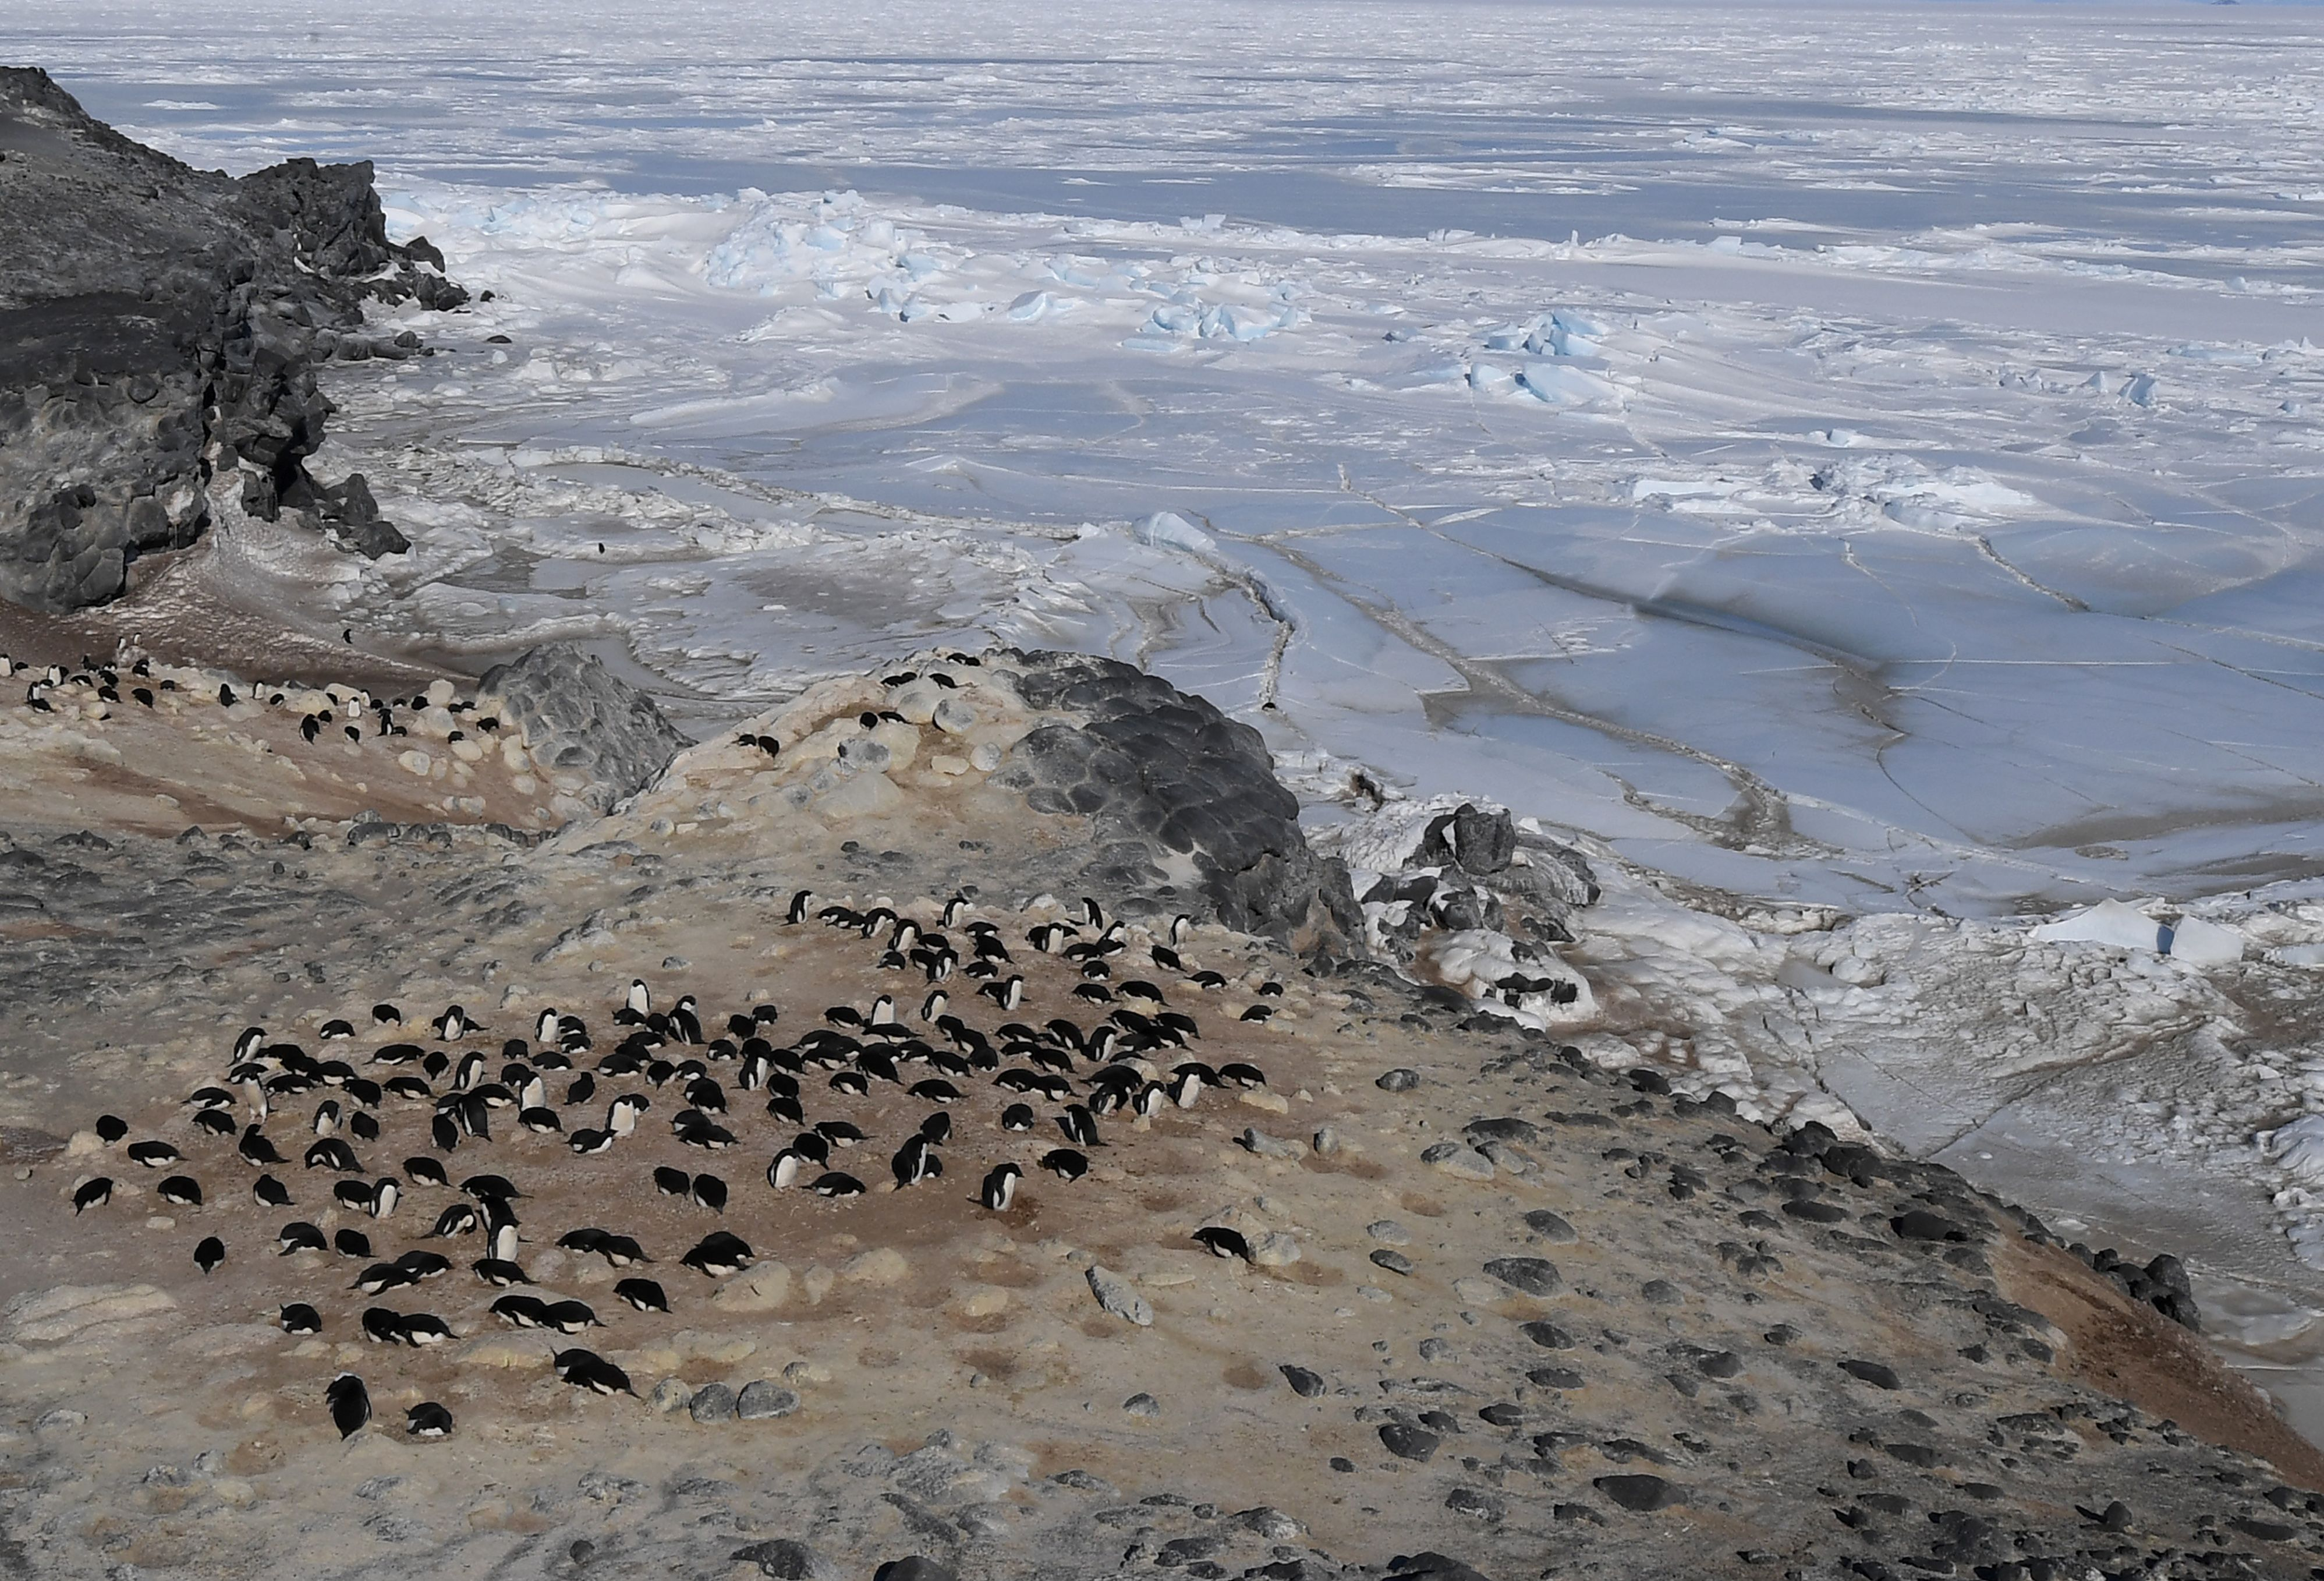 ANTARCTICA-US-DIPLOMACY An Adelie penguin colony beside the frozen Ross Sea area near McMurdo Station, Antarctica on November 11, 2016. (MARK RALSTON/AFP/Getty Images)